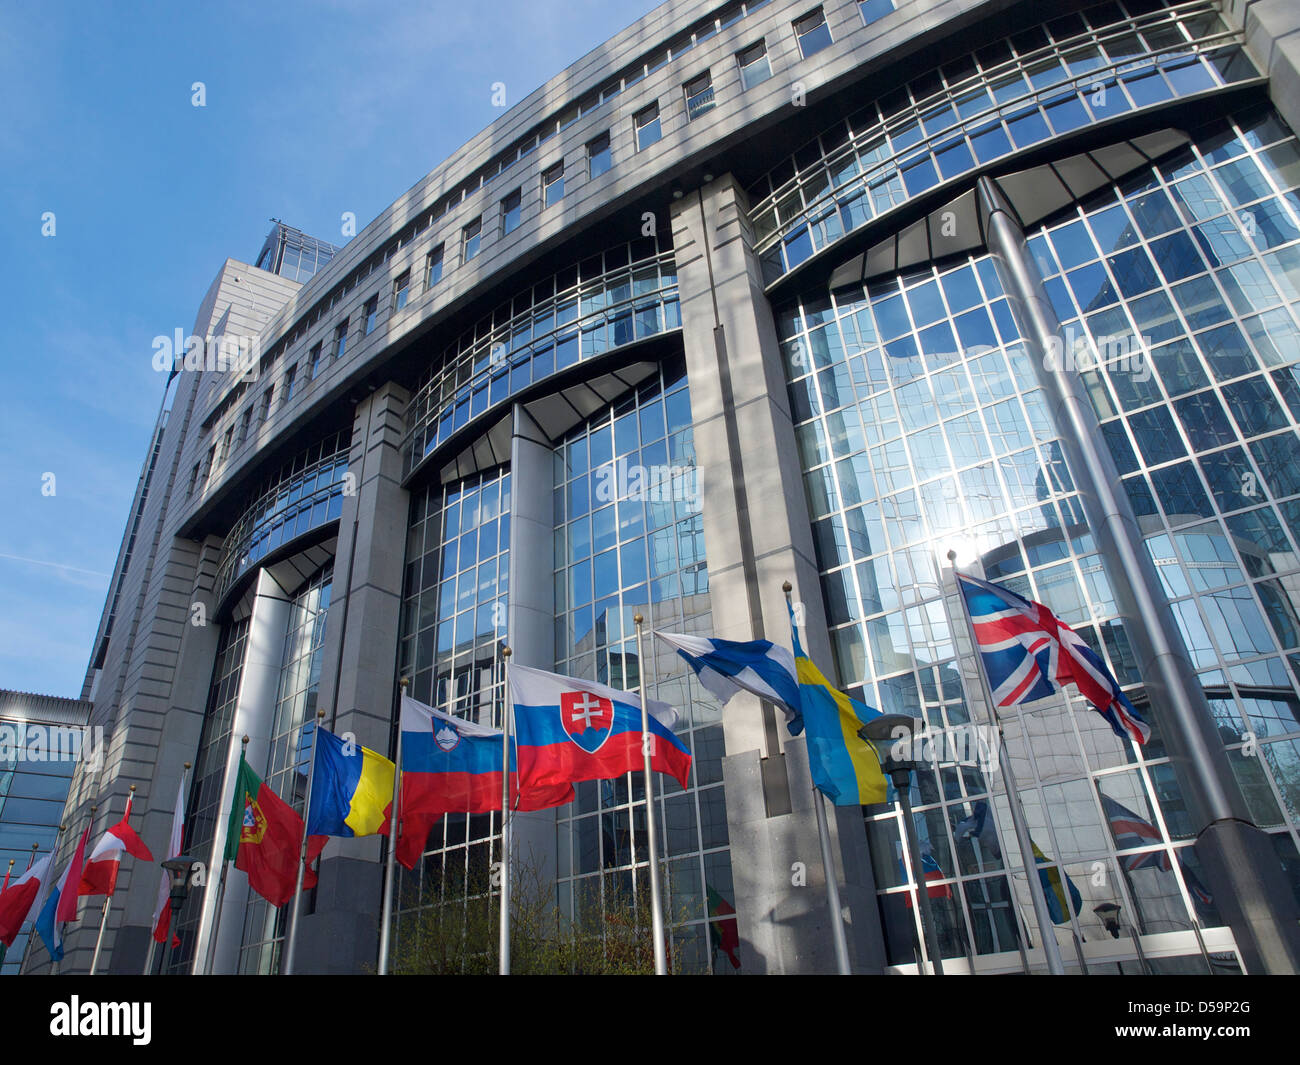 various national flags at the European Parliament building in Brussels, Belgium - Stock Image